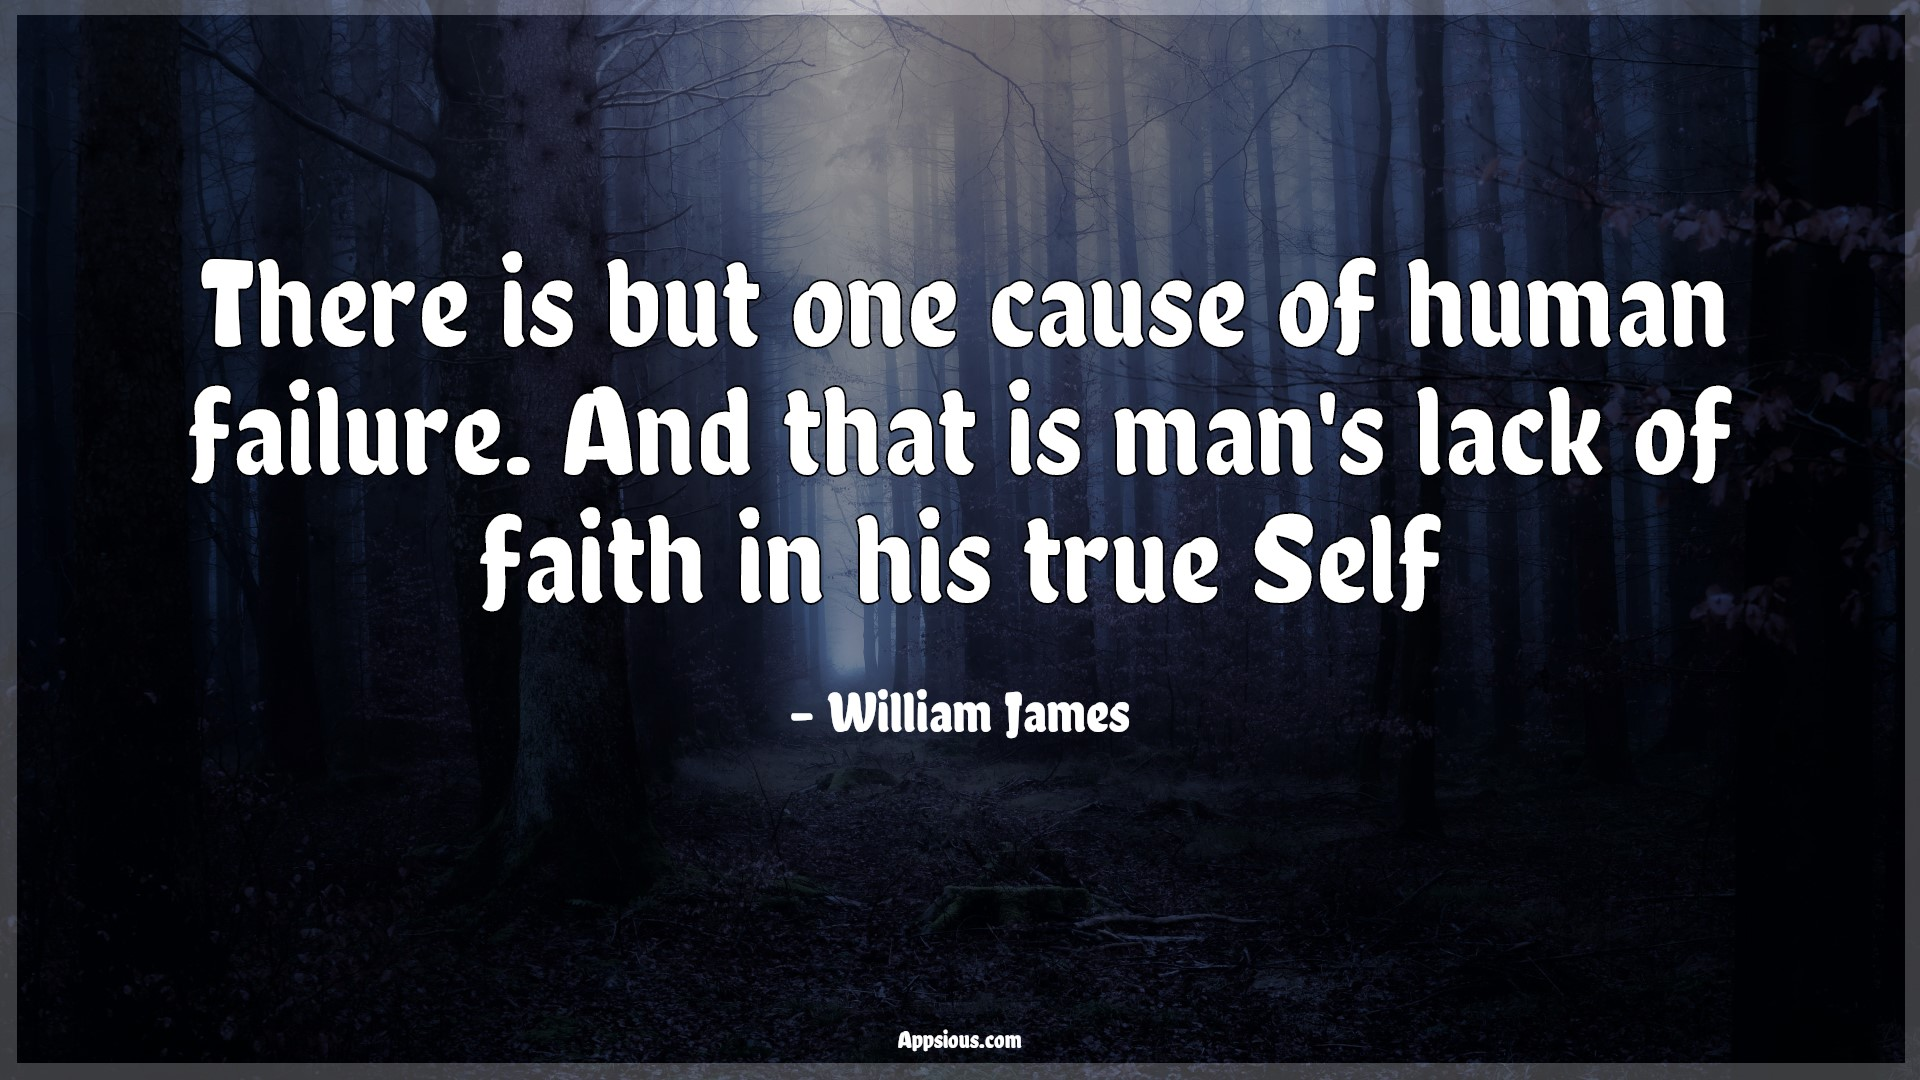 There is but one cause of human failure. And that is man's lack of faith in his true Self